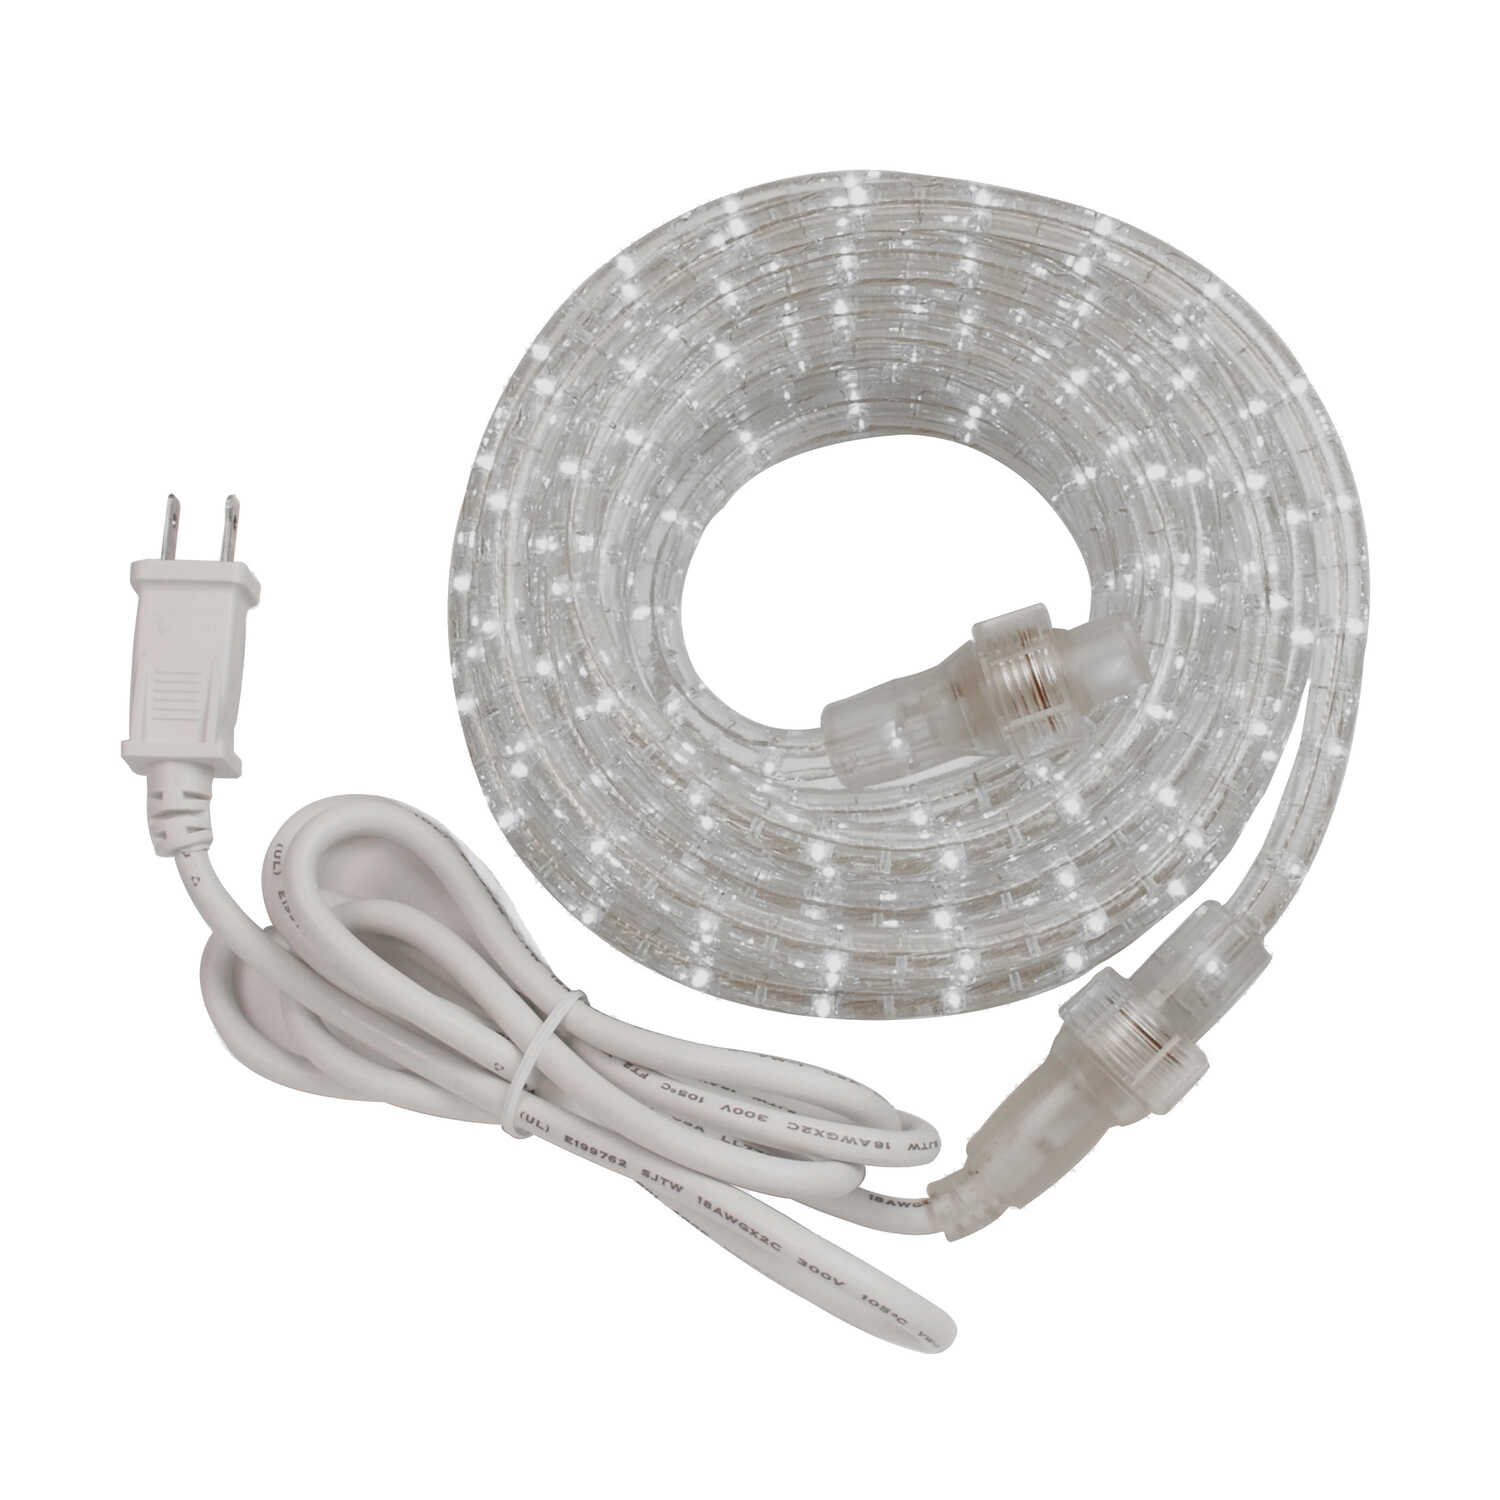 Amertac  Decorative  Clear  Rope Light  48 ft.